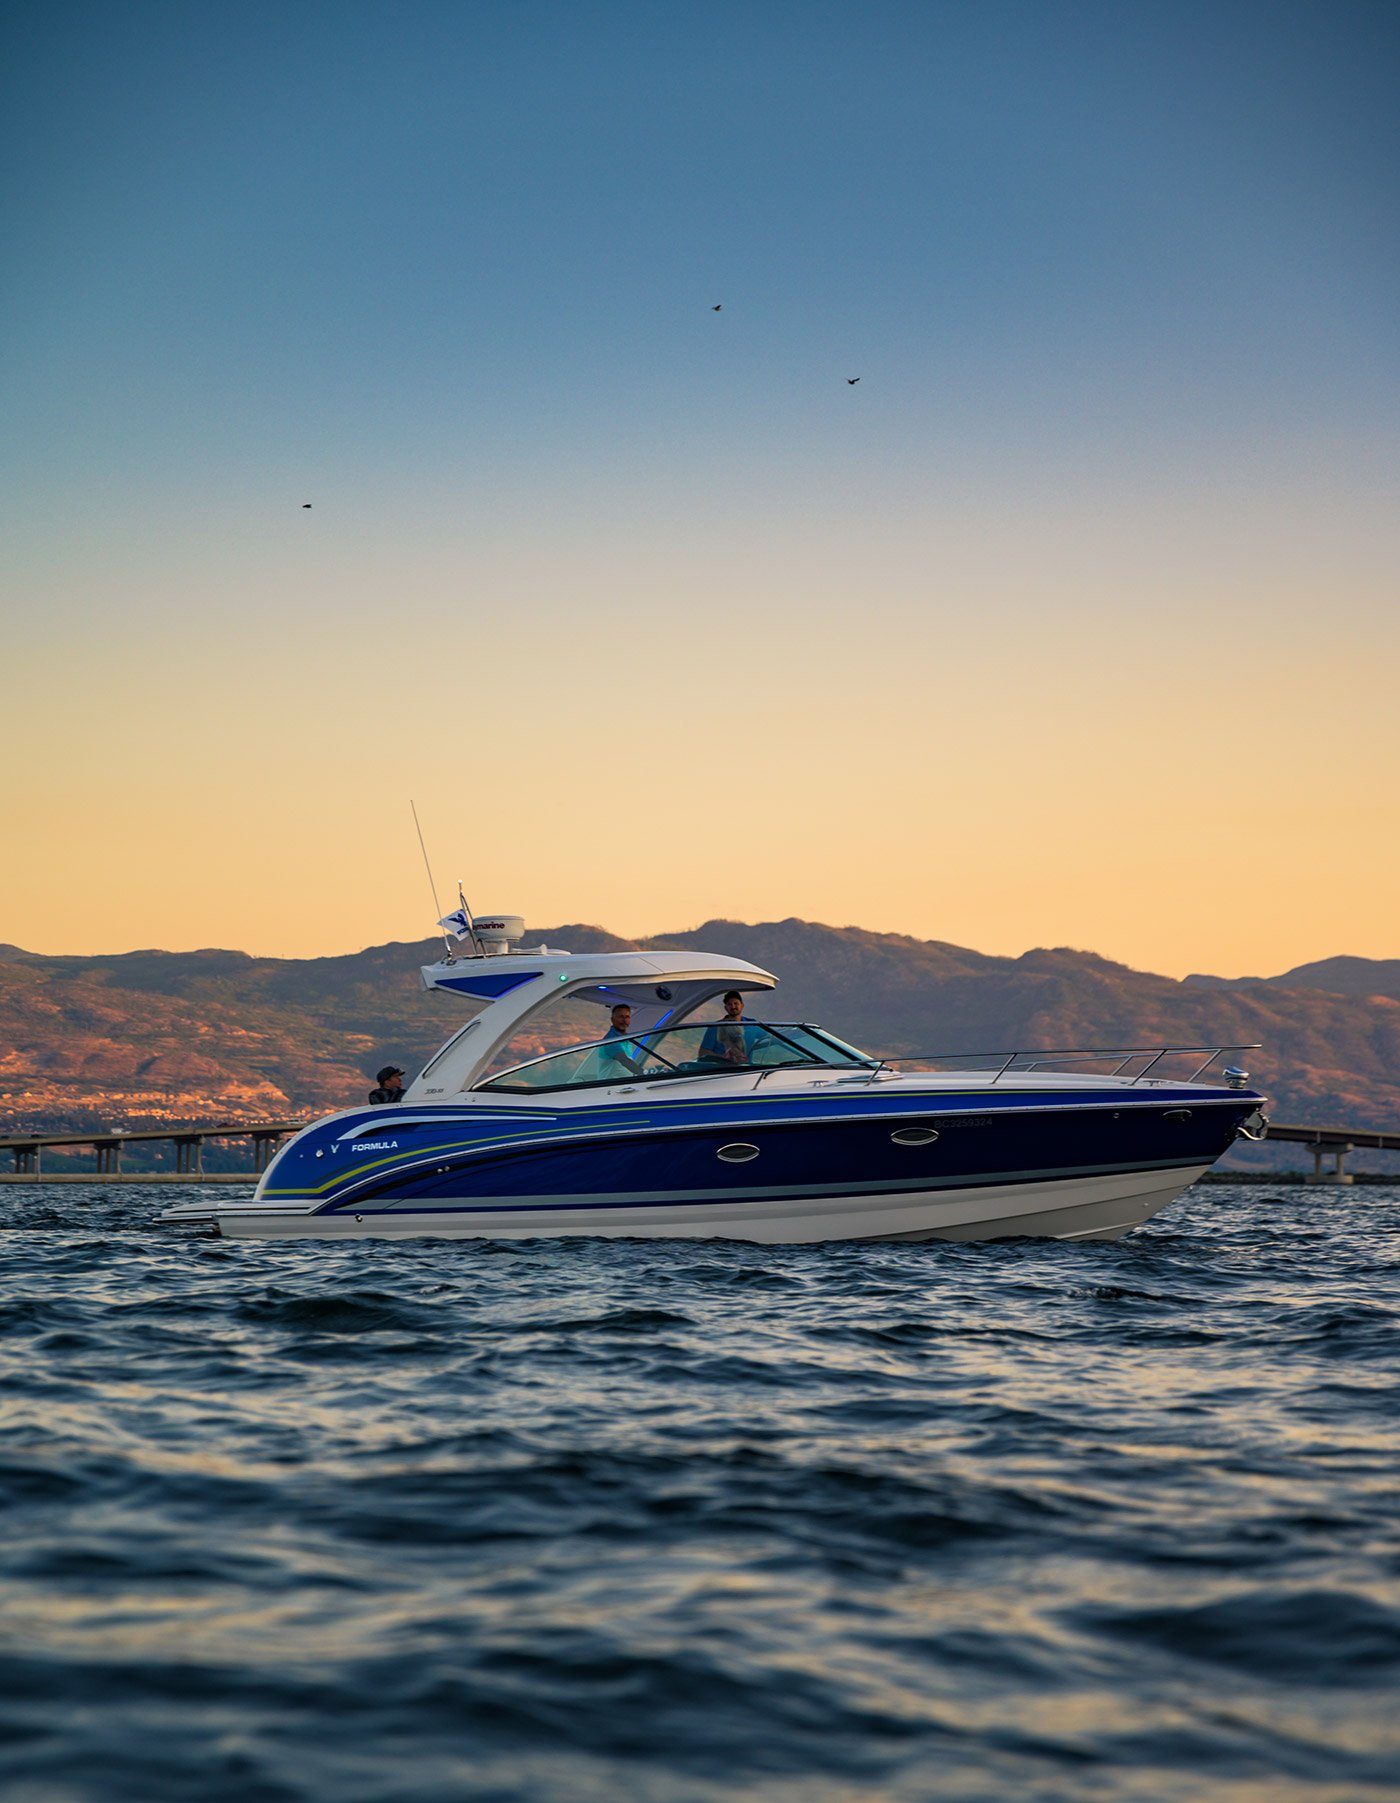 Flagship Marine - The Okanagan's trusted premium boat dealer since 1986.